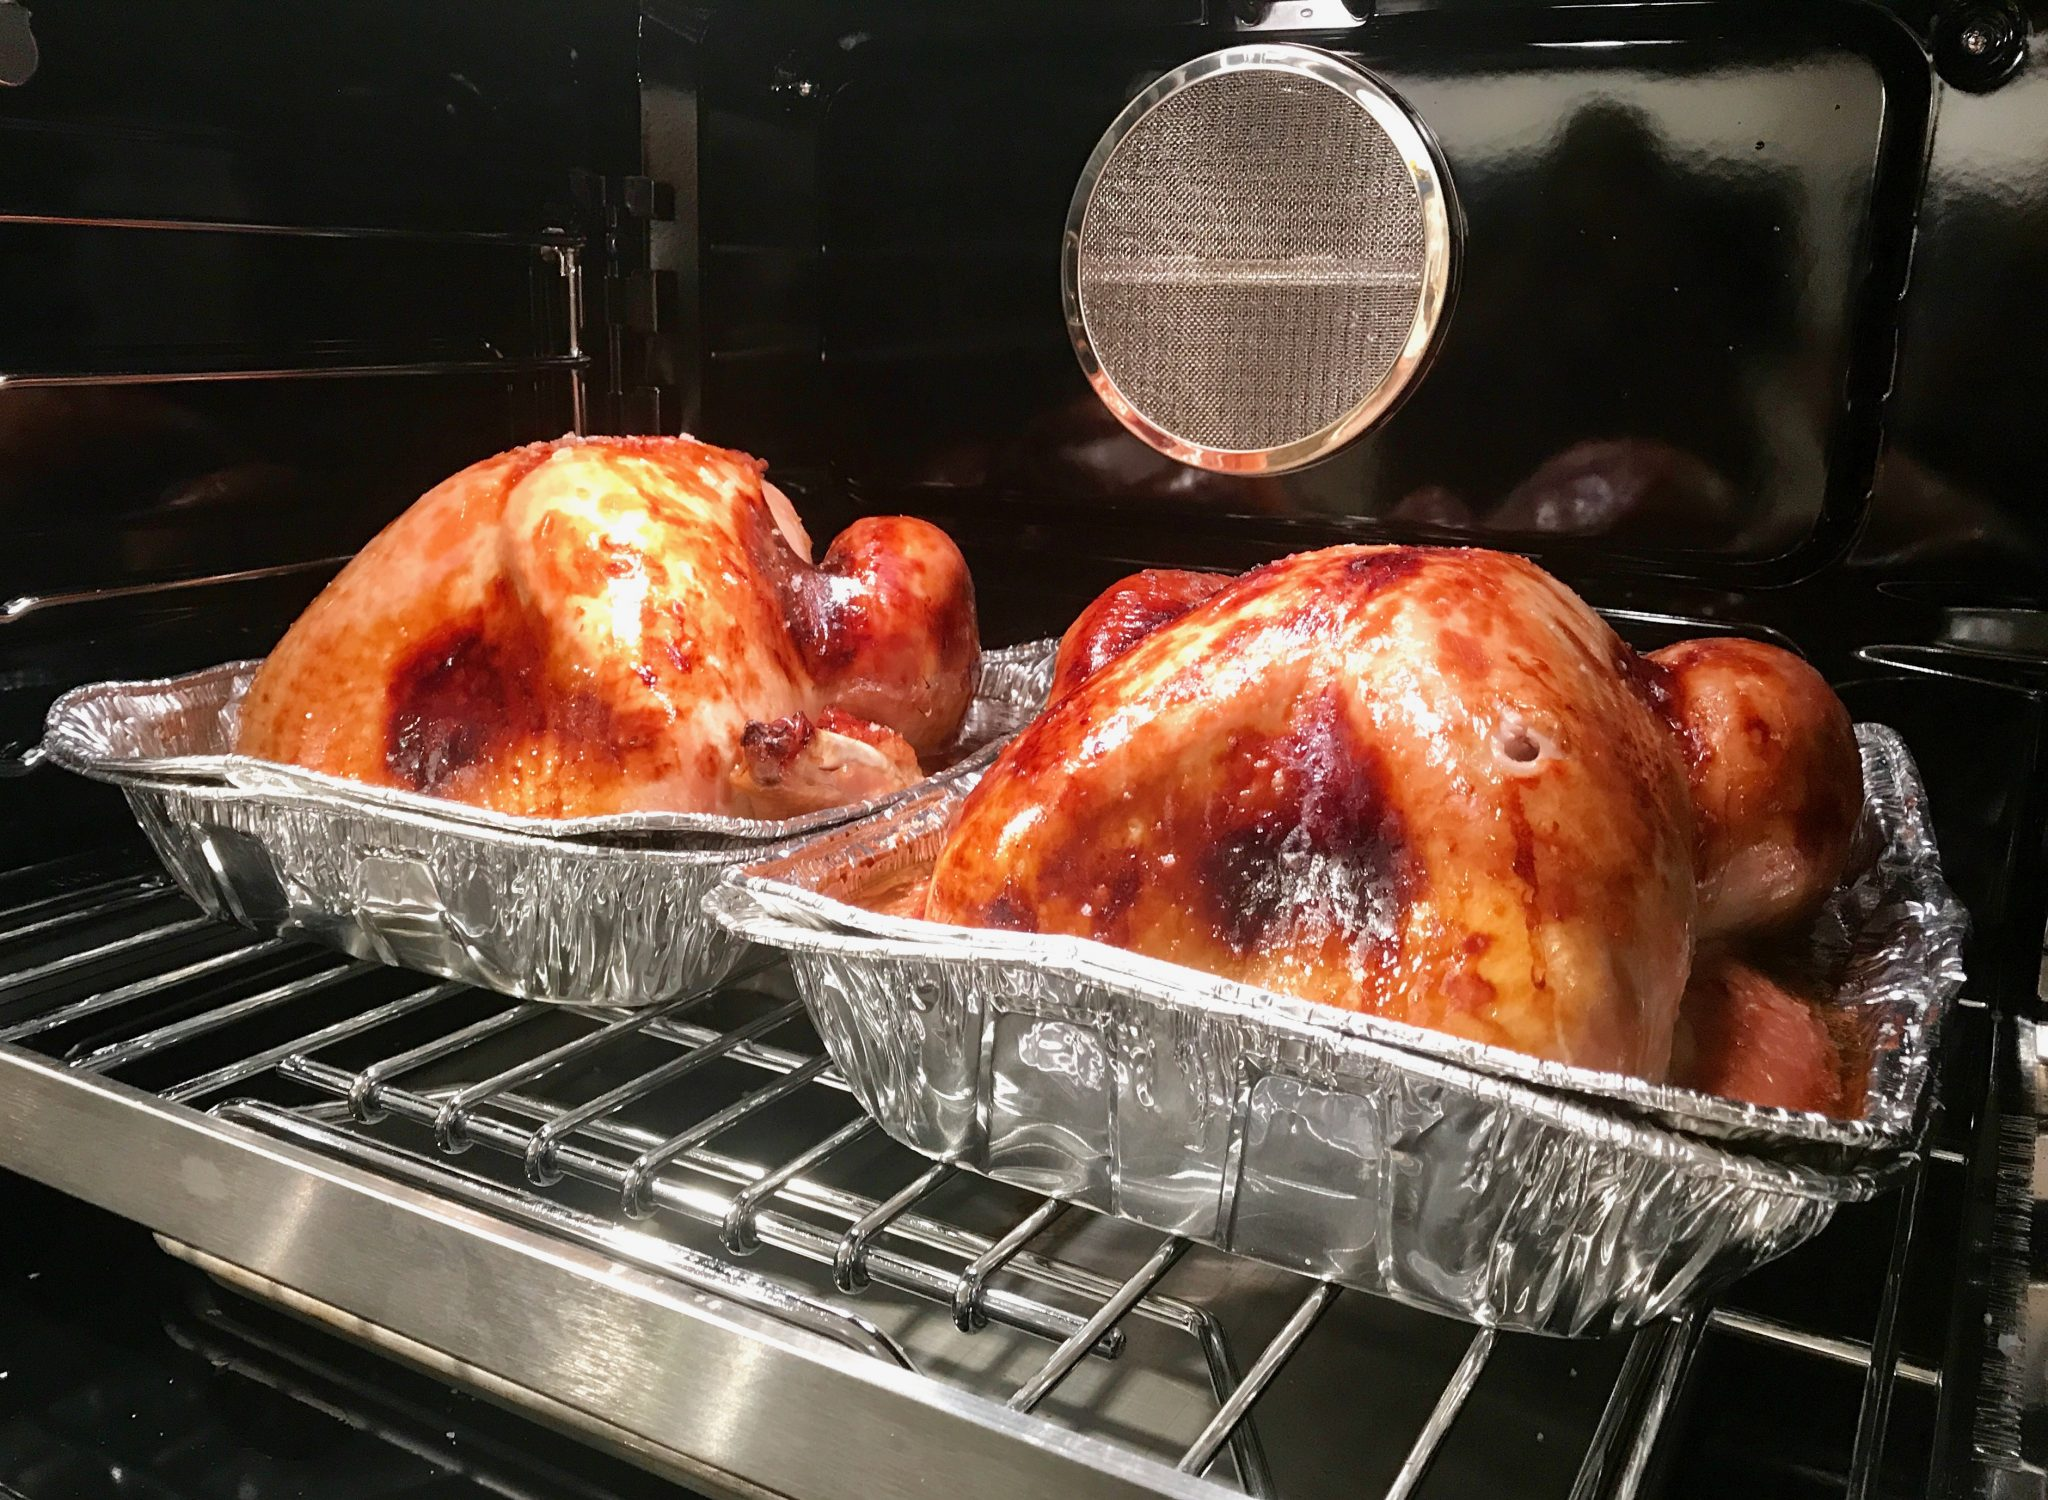 two Thanksgiving turkeys baking in the oven